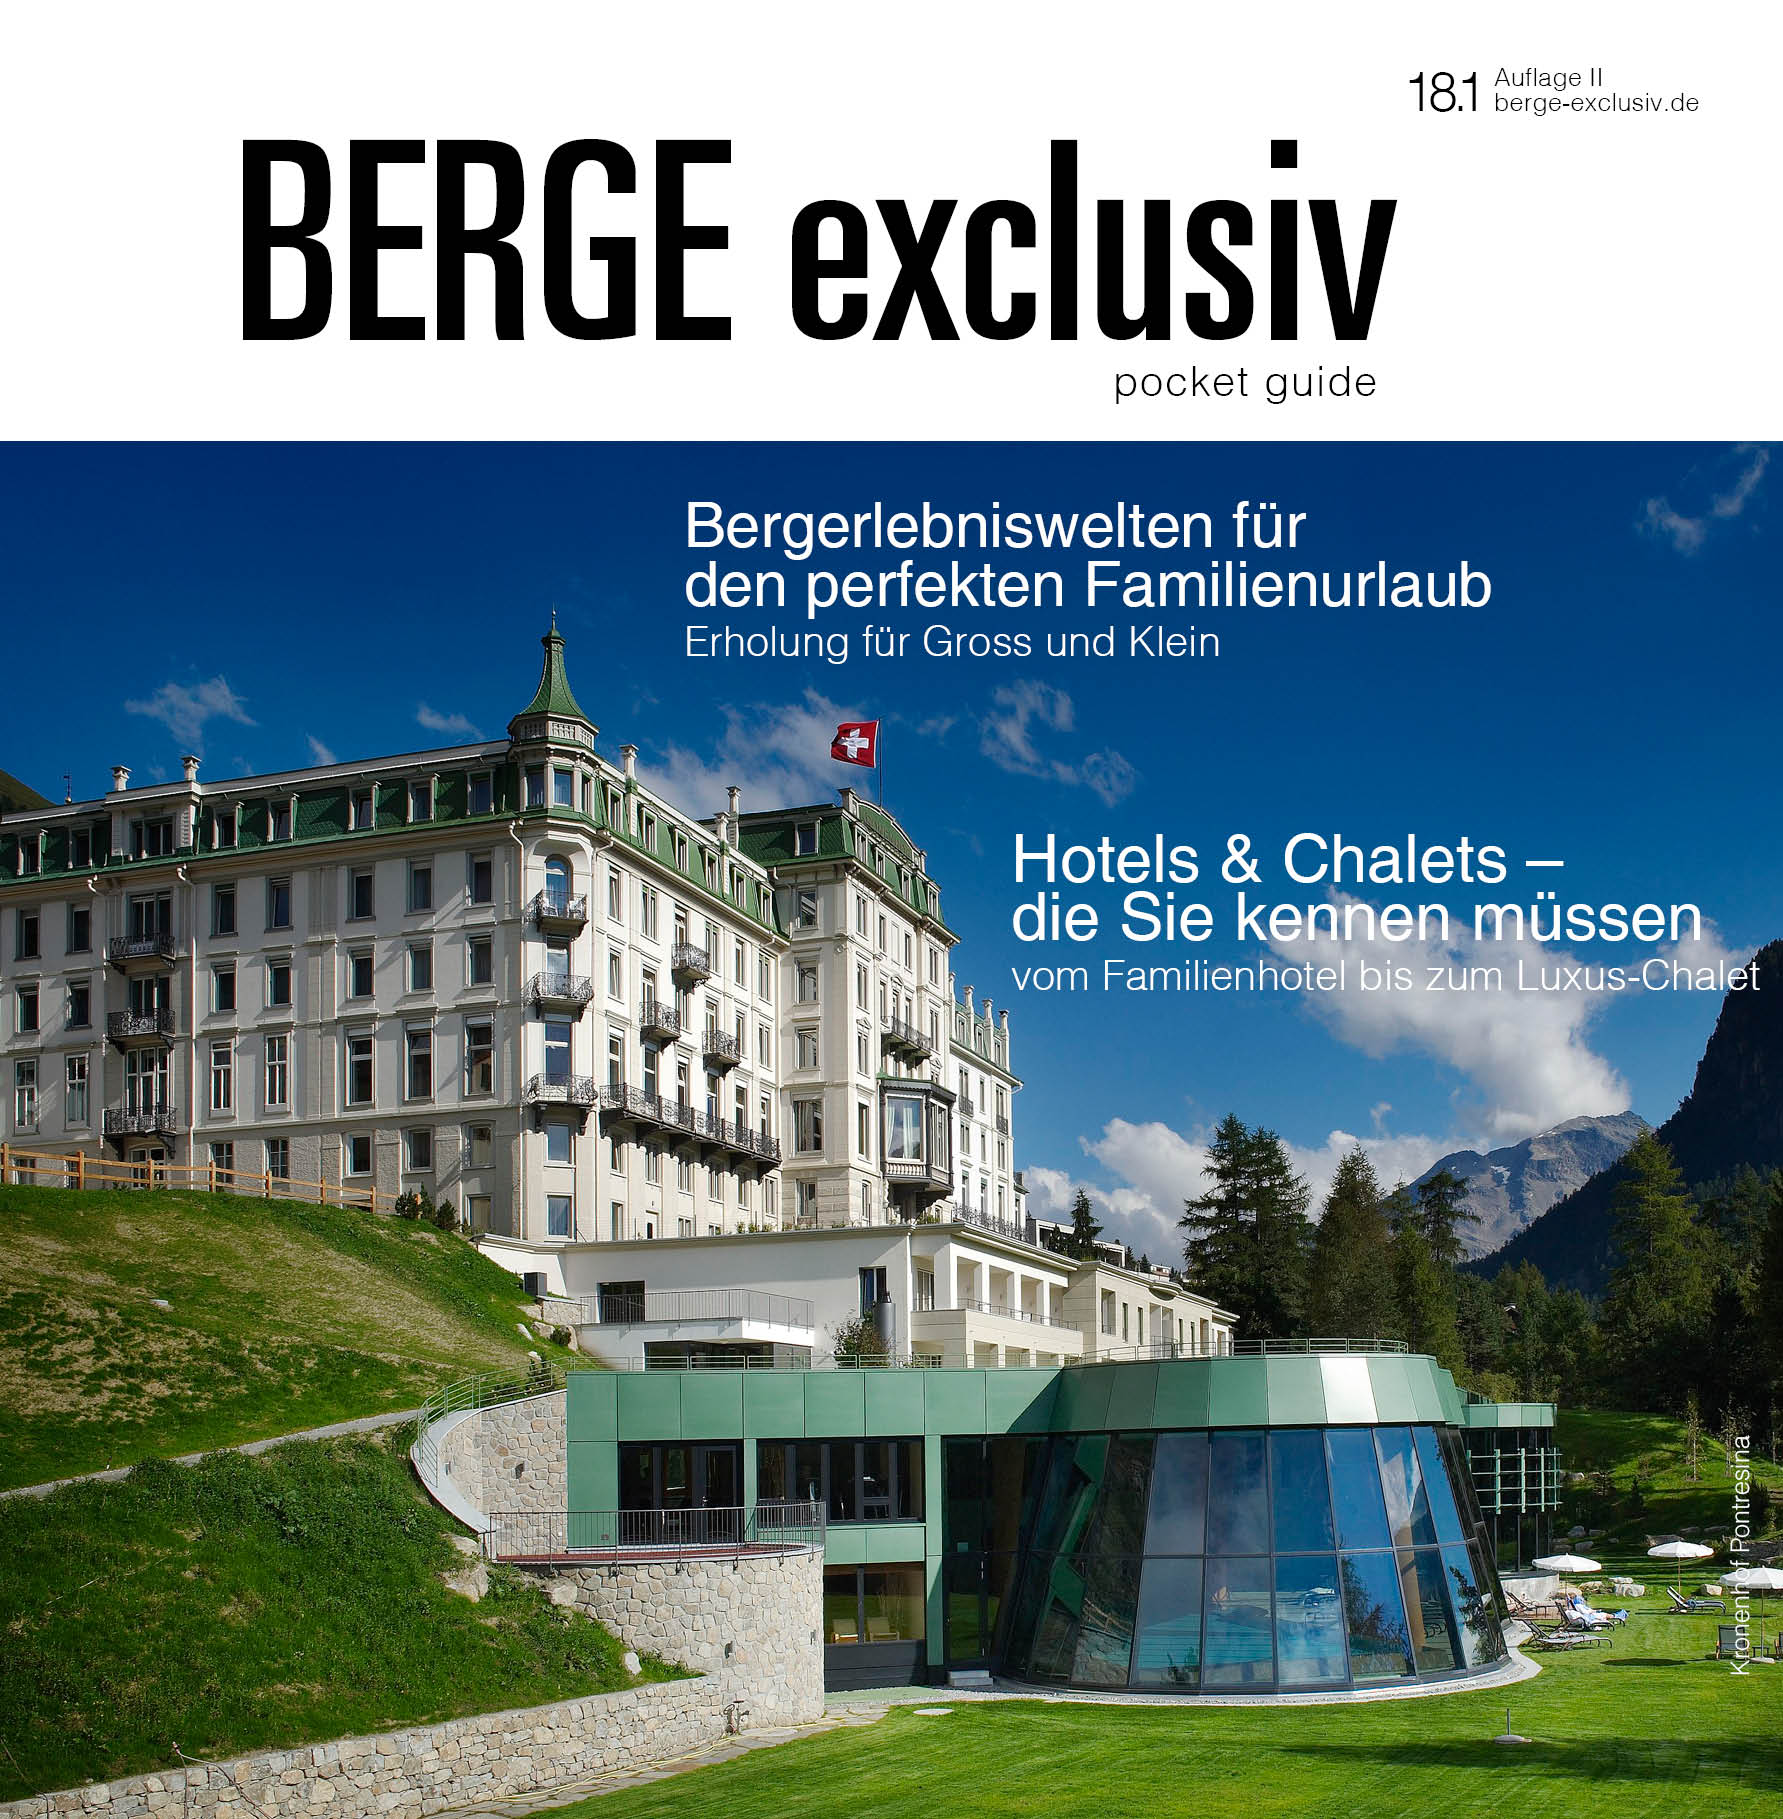 http://www.berge-exclusiv.de/wp-content/uploads/Pocket-Guide-180416.jpg